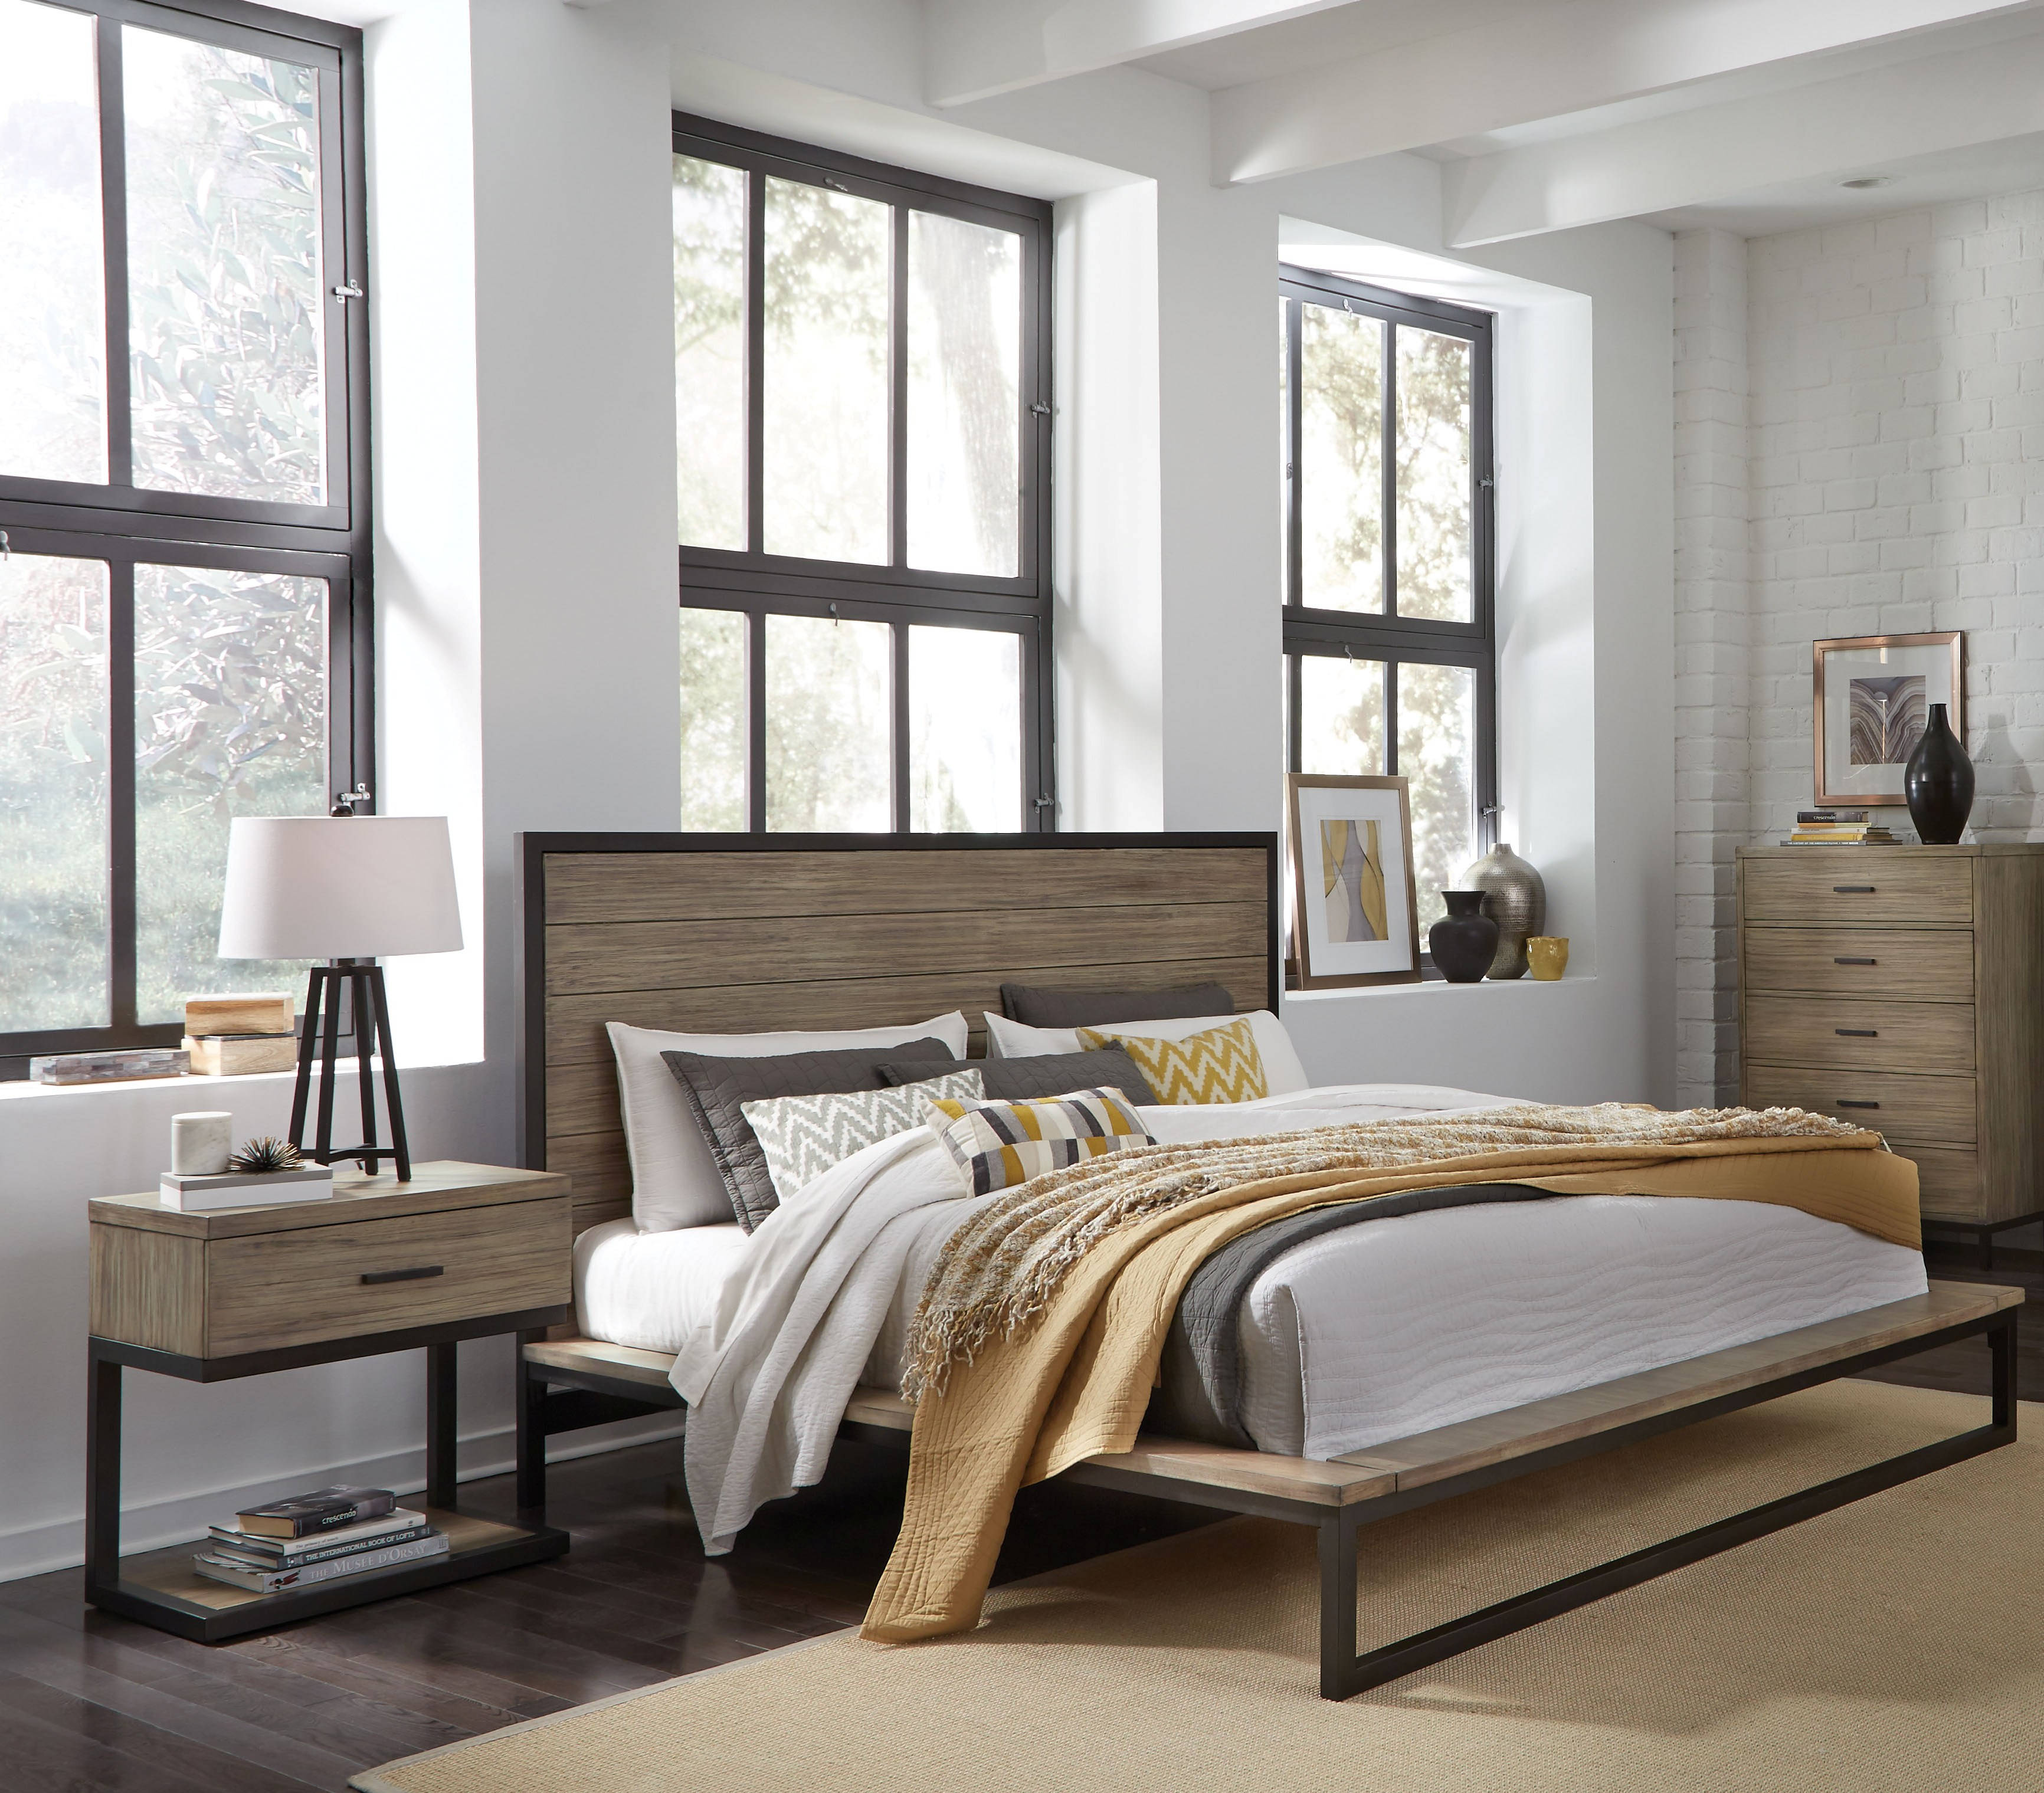 Standard Furniture Edgewood 2pc Bedroom Set with King Platform Bed